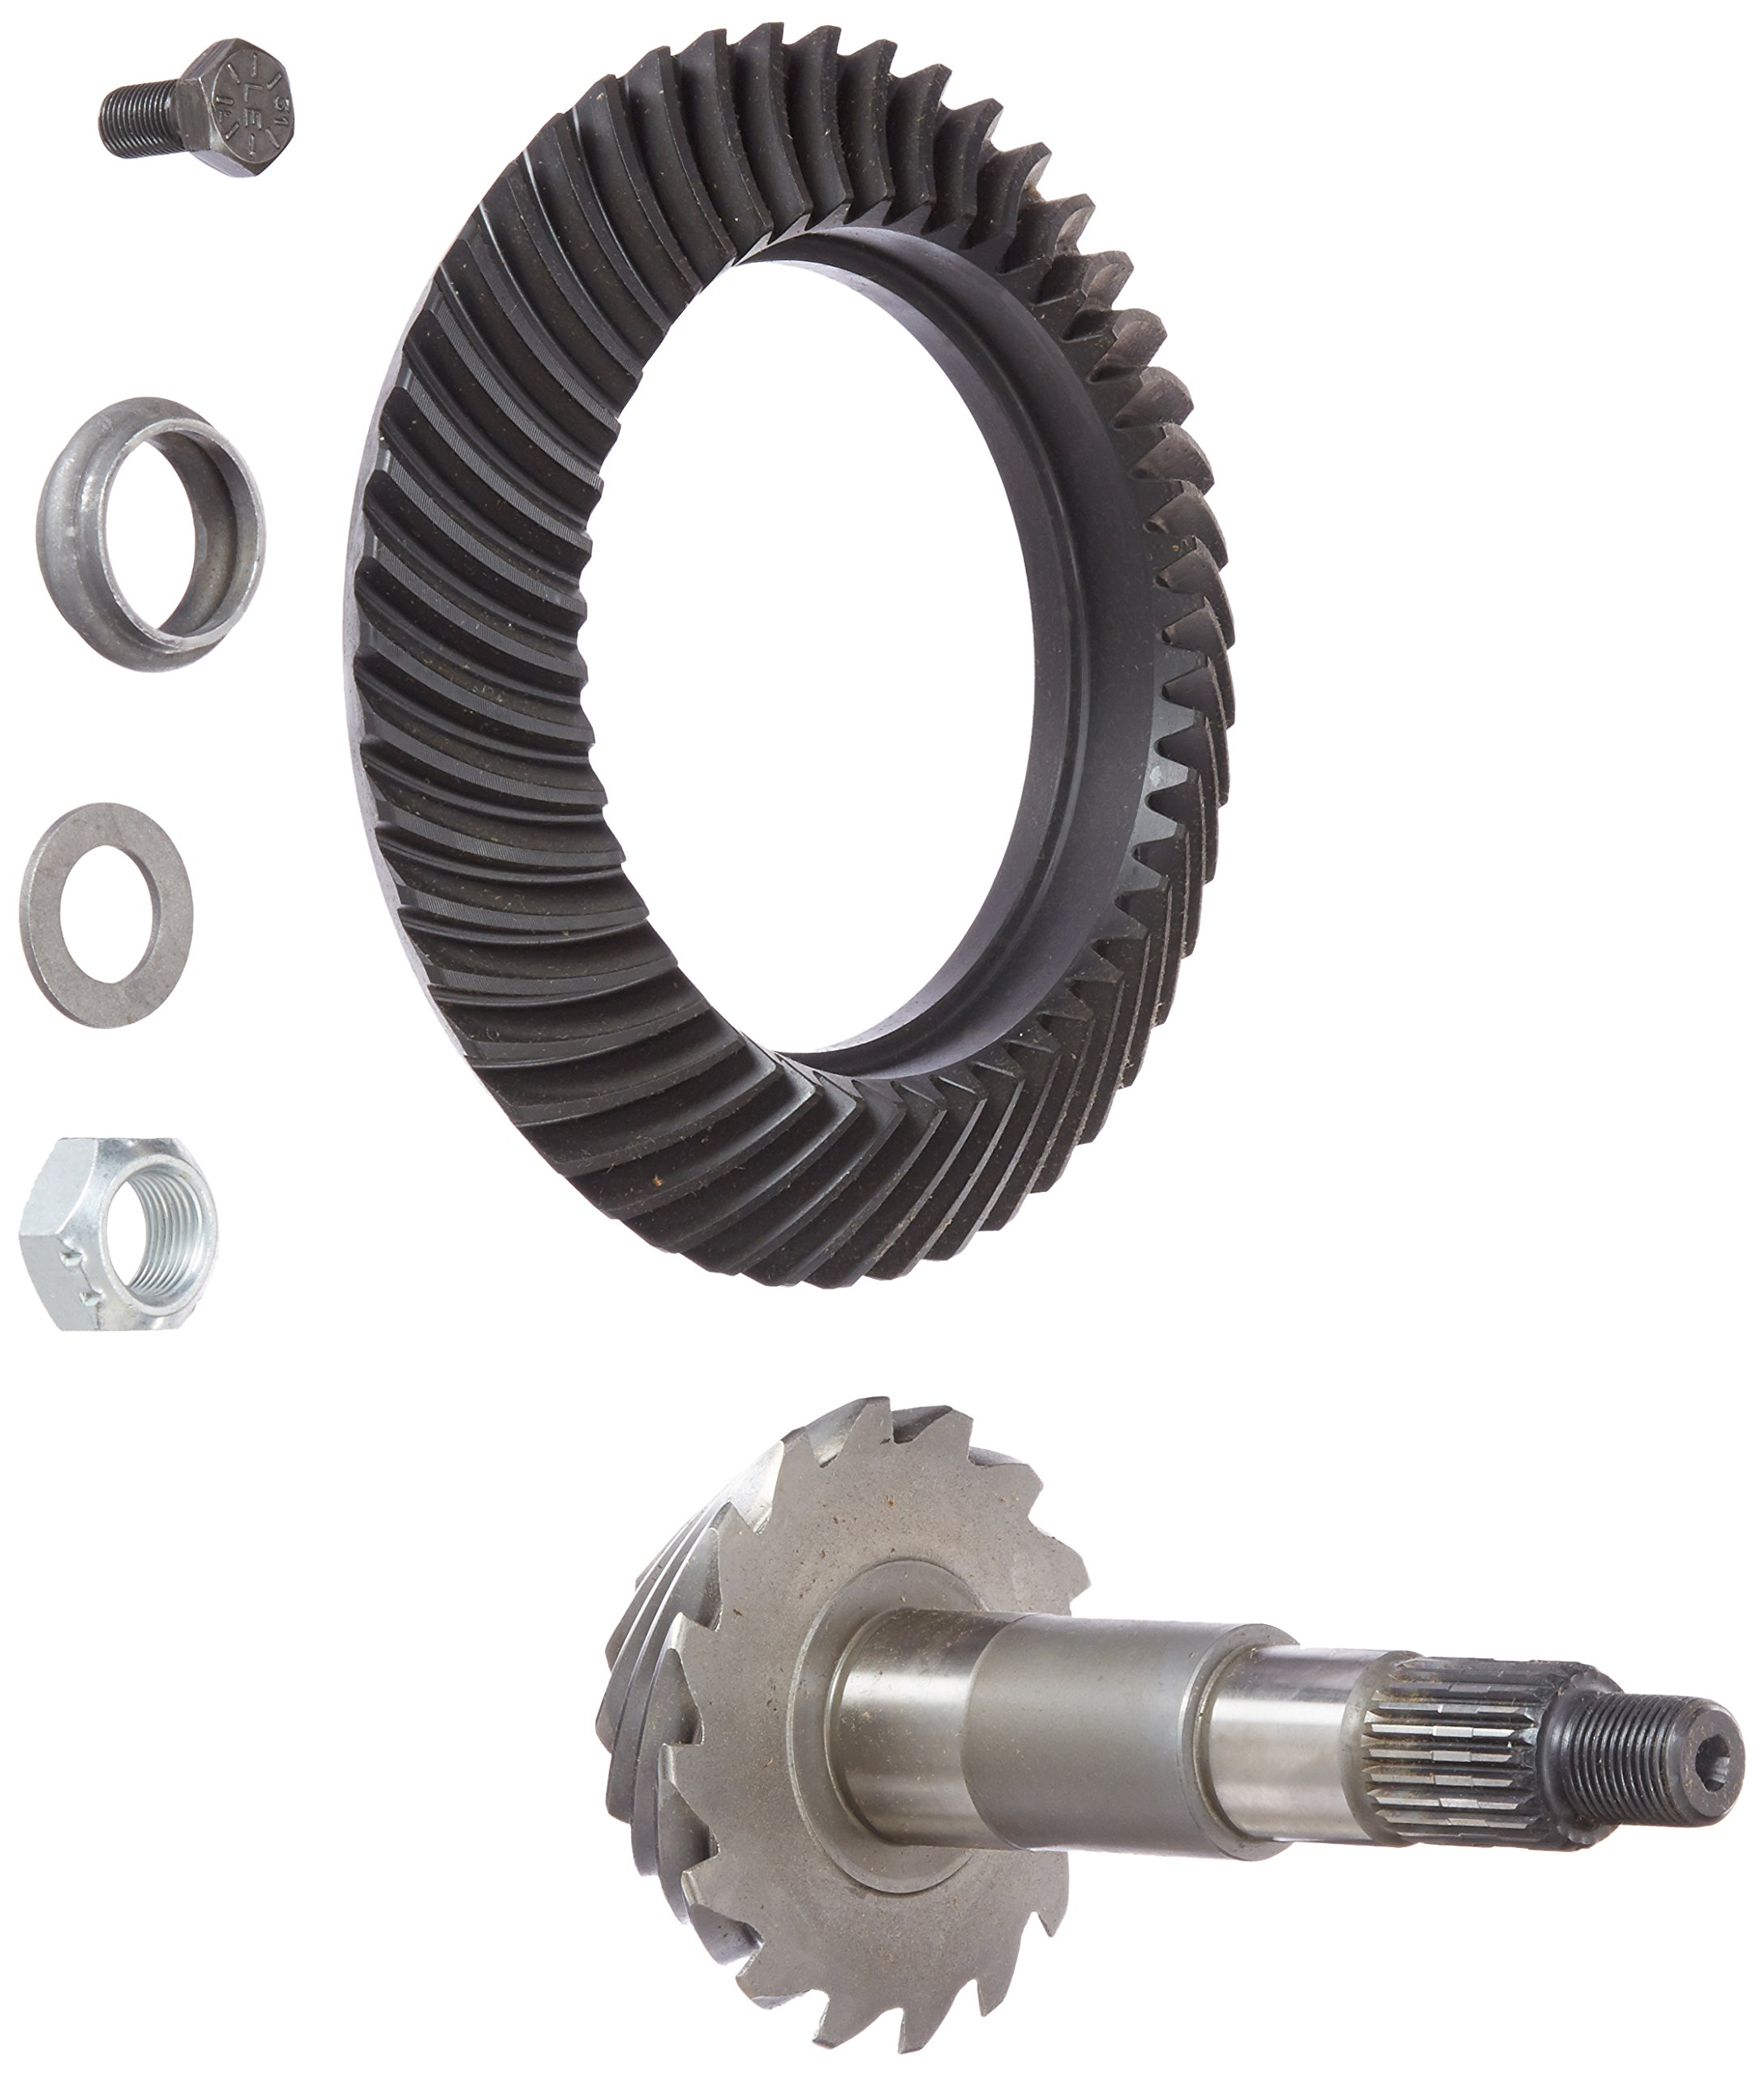 Spicer 2002551-5 Ring and Pinion Gear Set